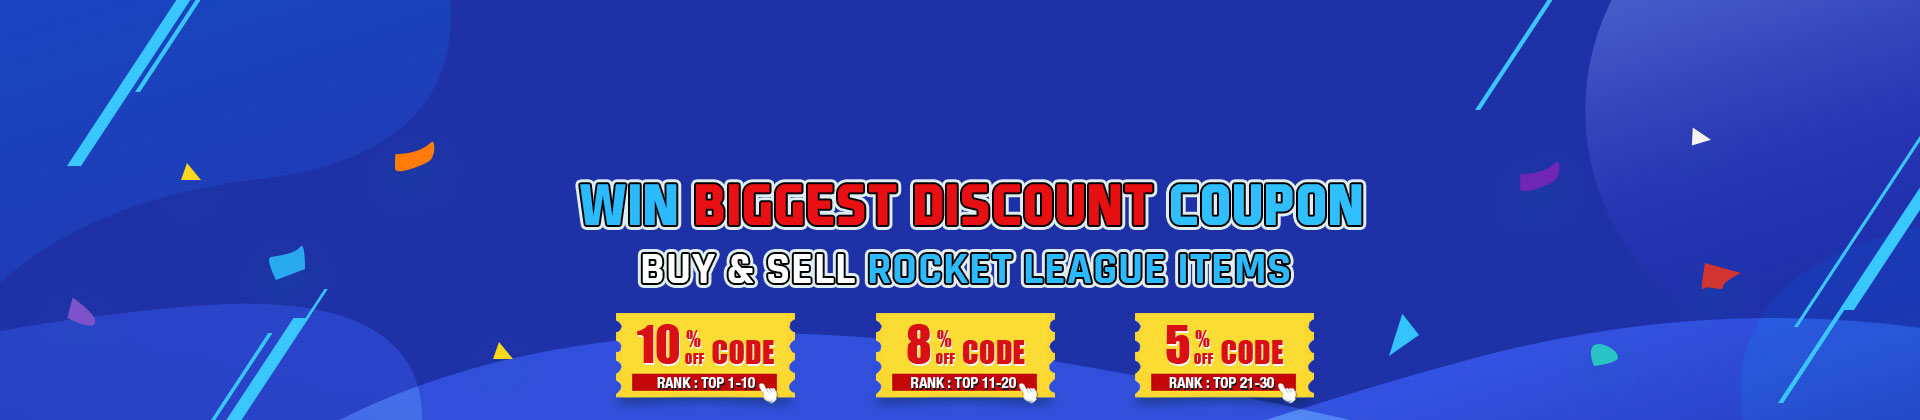 Cheap Rocket League Items Store,Buy Rocket League Crates,Skins And